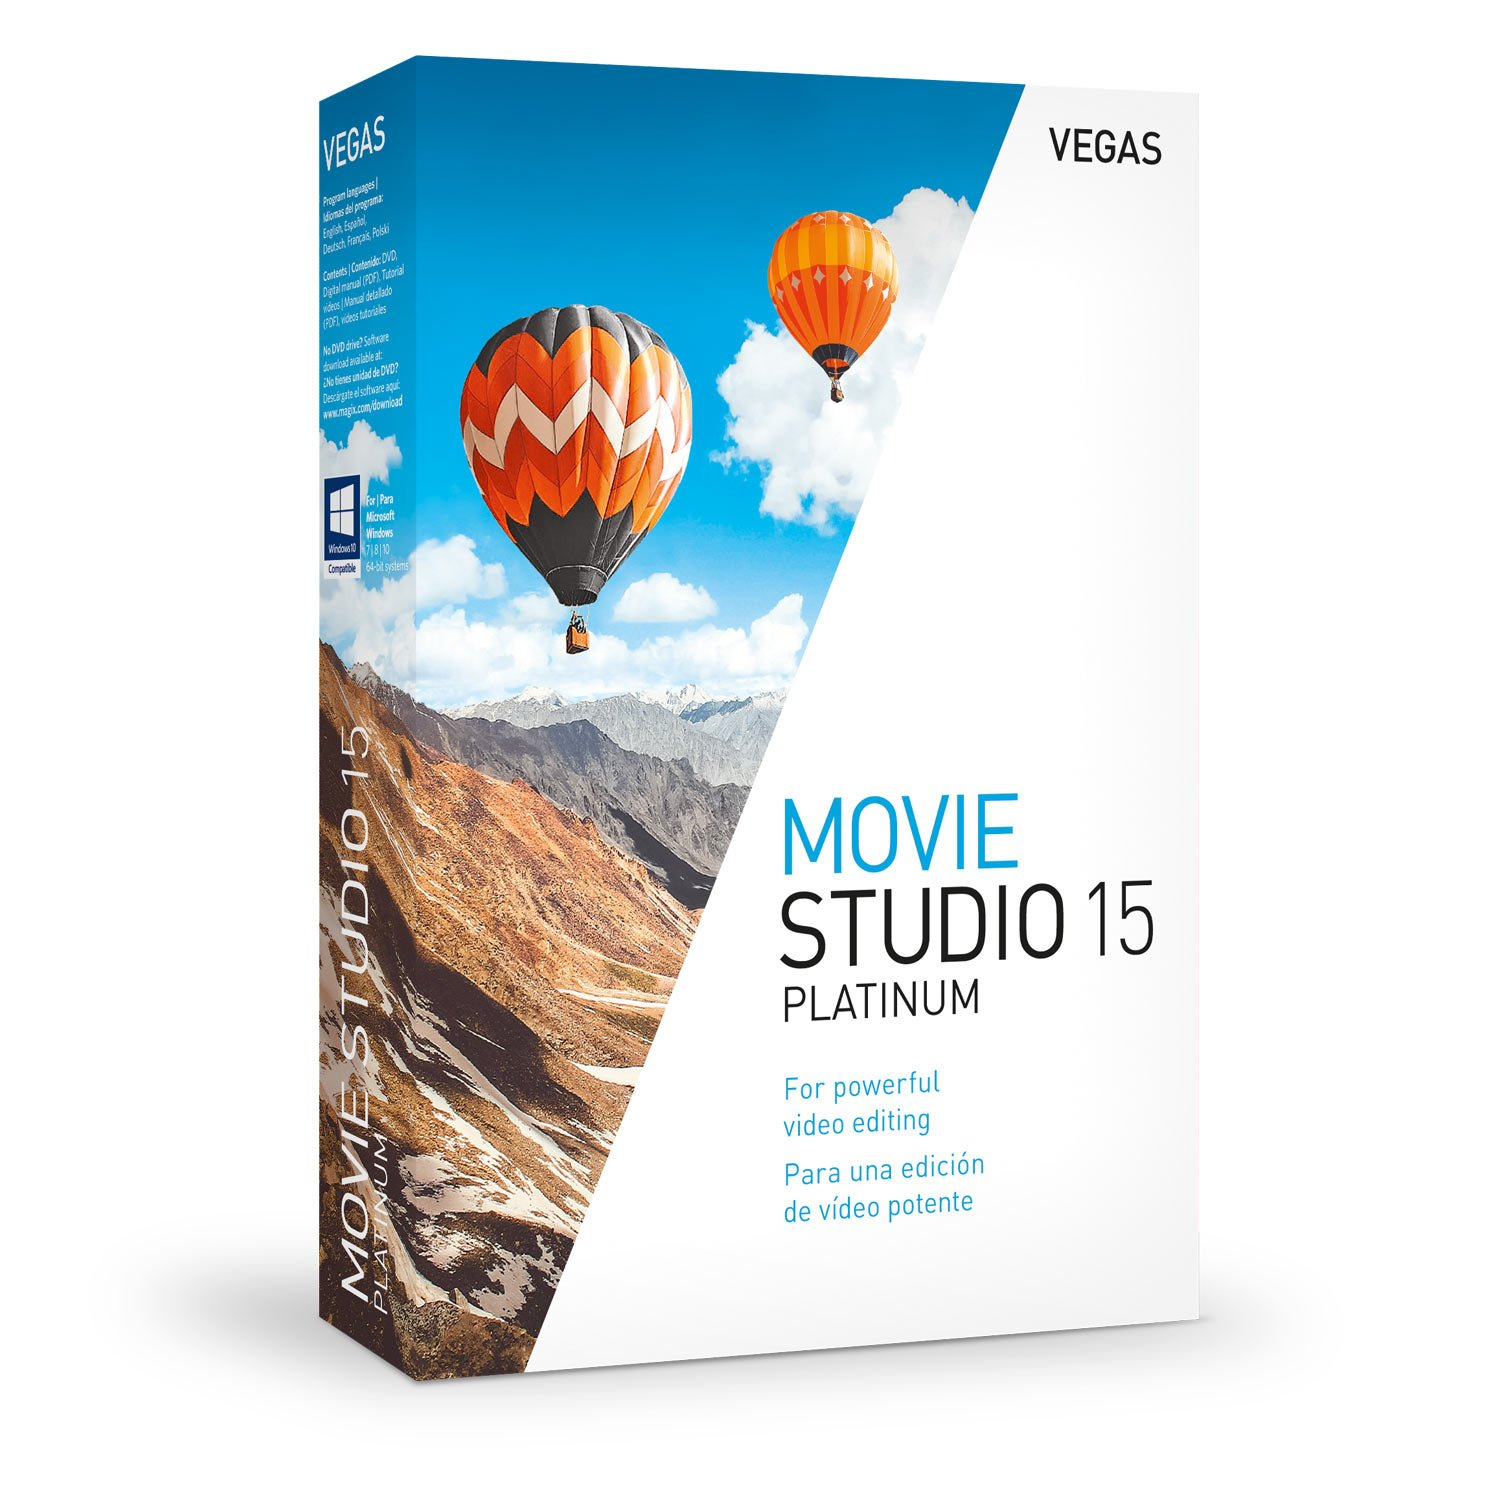 VEGAS Movie Studio 15 Platinum - Powerful Tools For Video Editing by Vegas